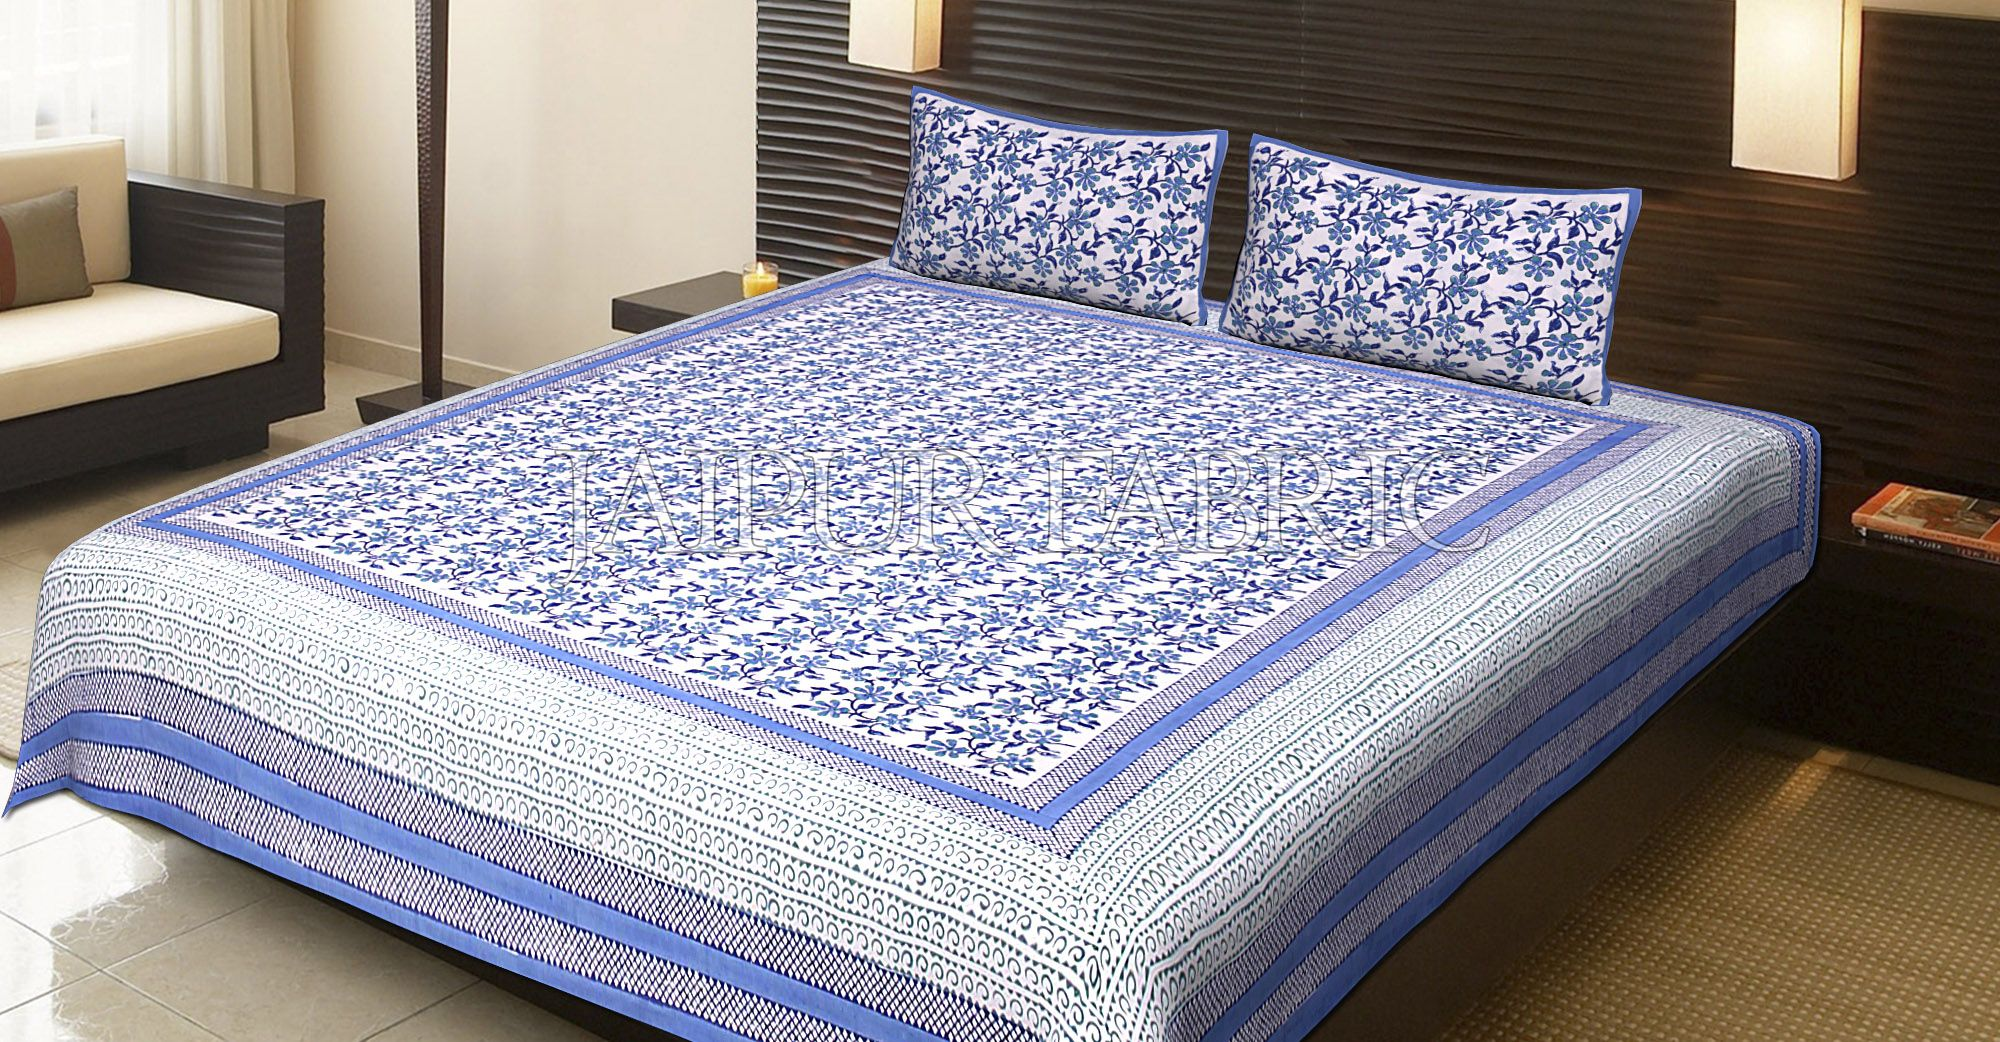 Blue Border White Base Flower Pattern Block Print Cotton Double Bed Sheet